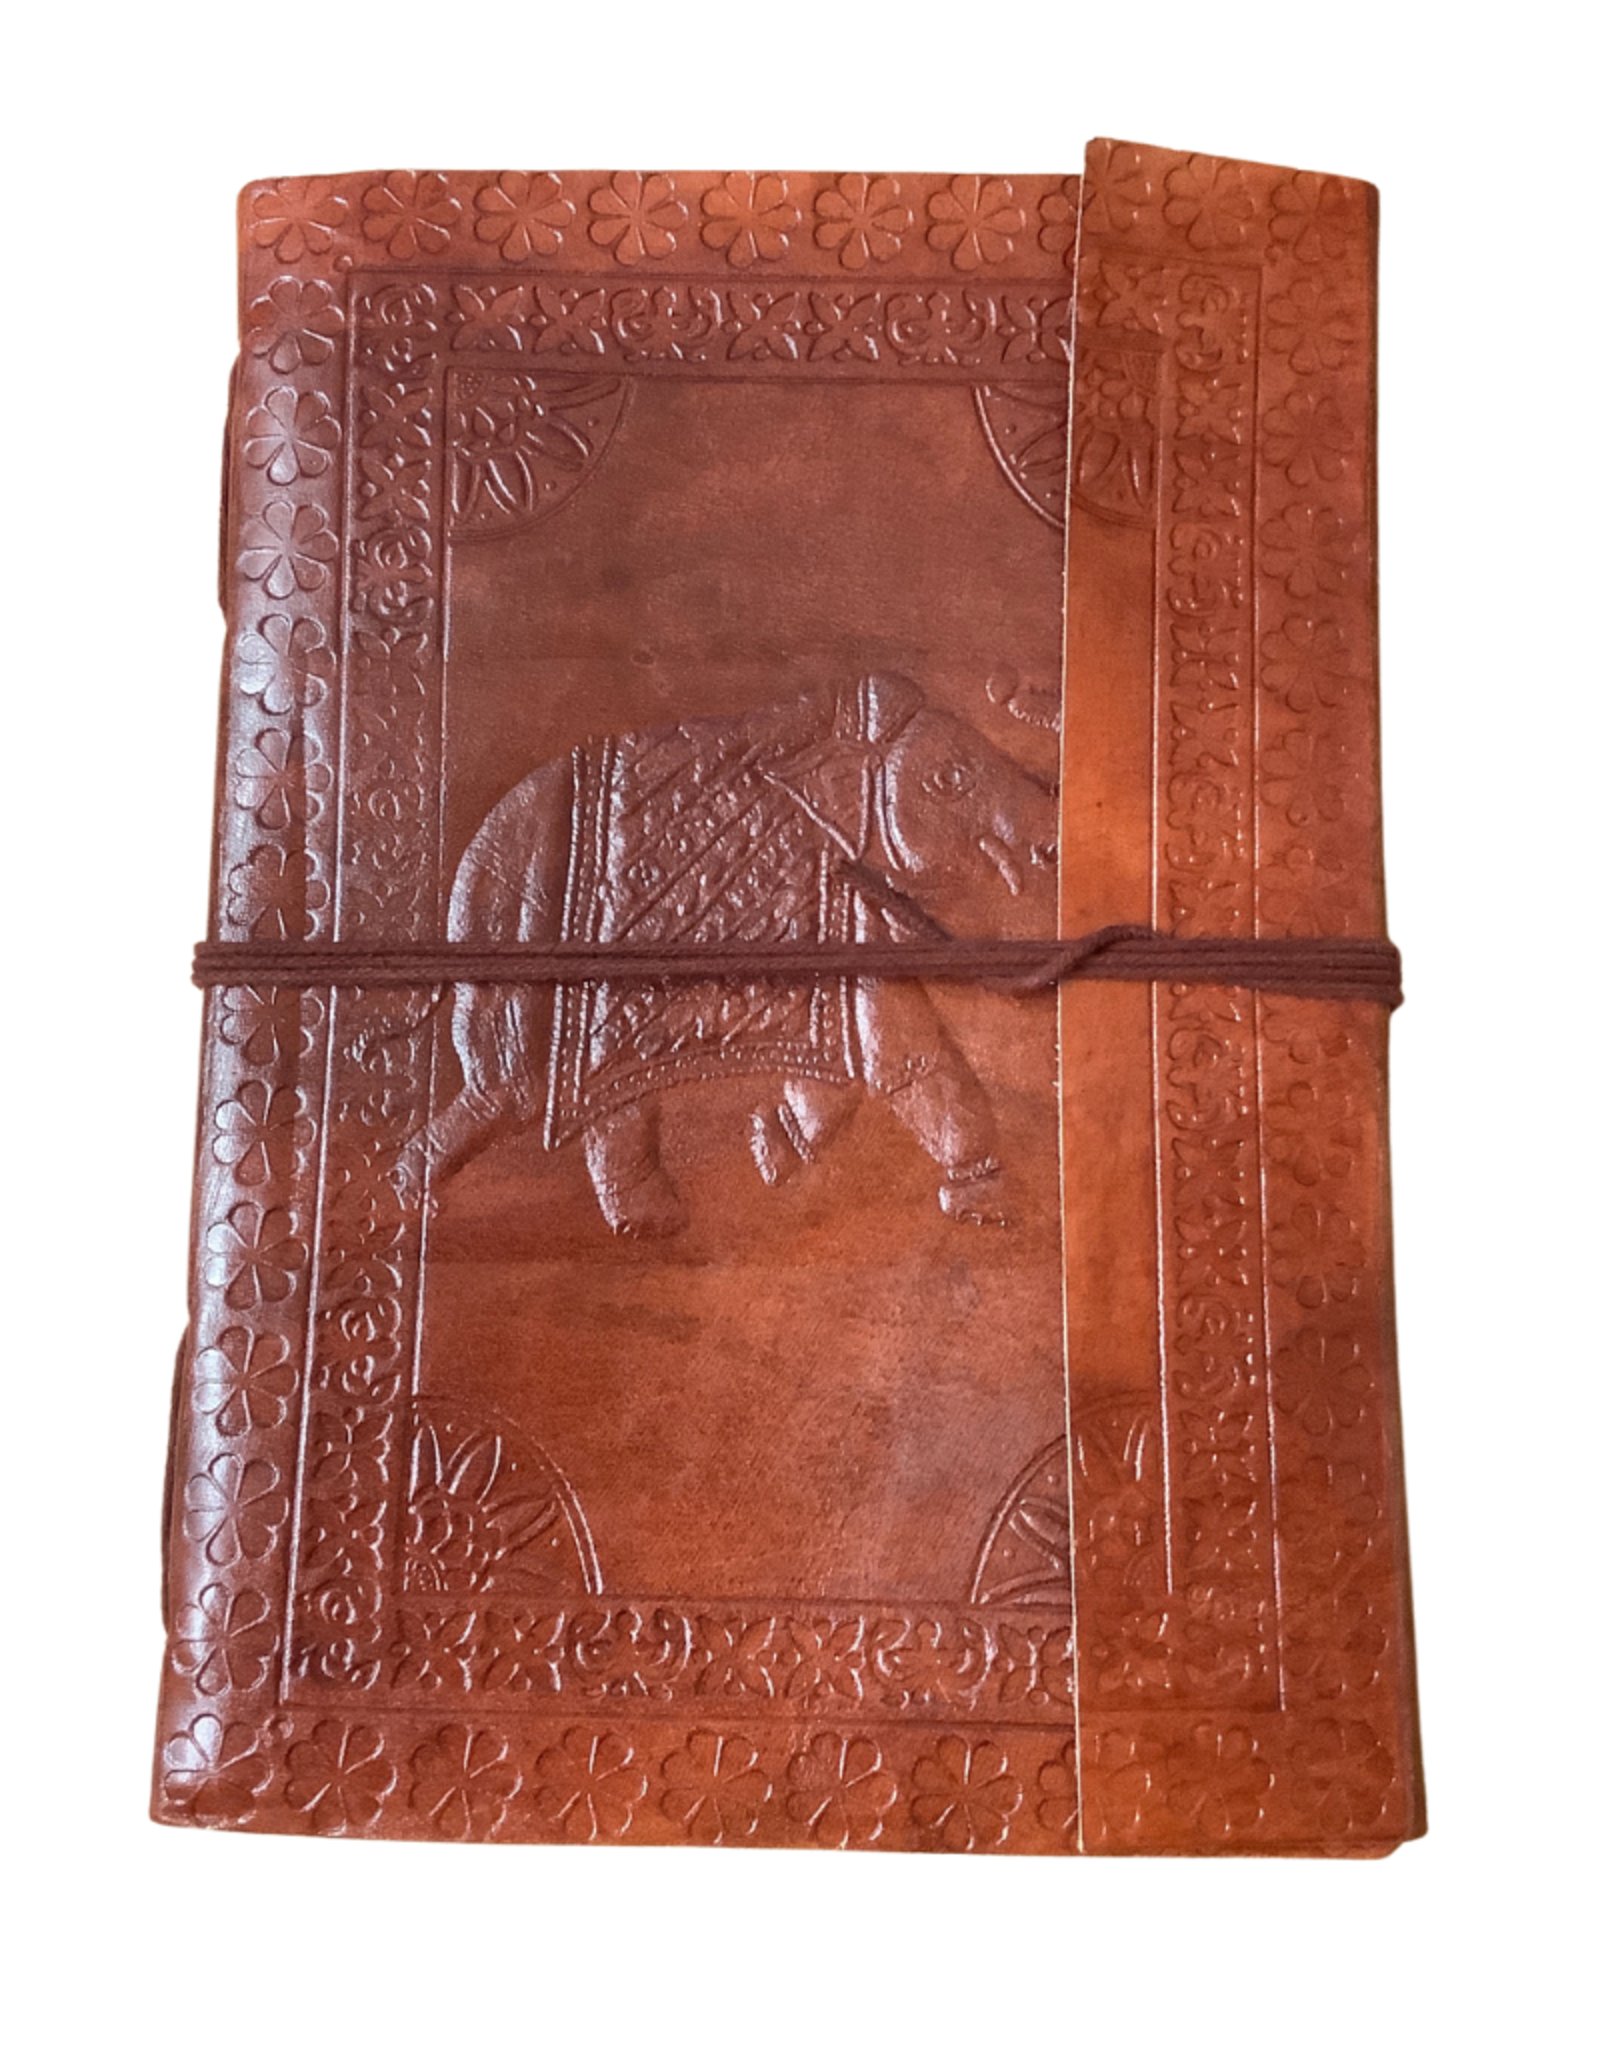 Journal Embossed Elephant Brown leather w/cord